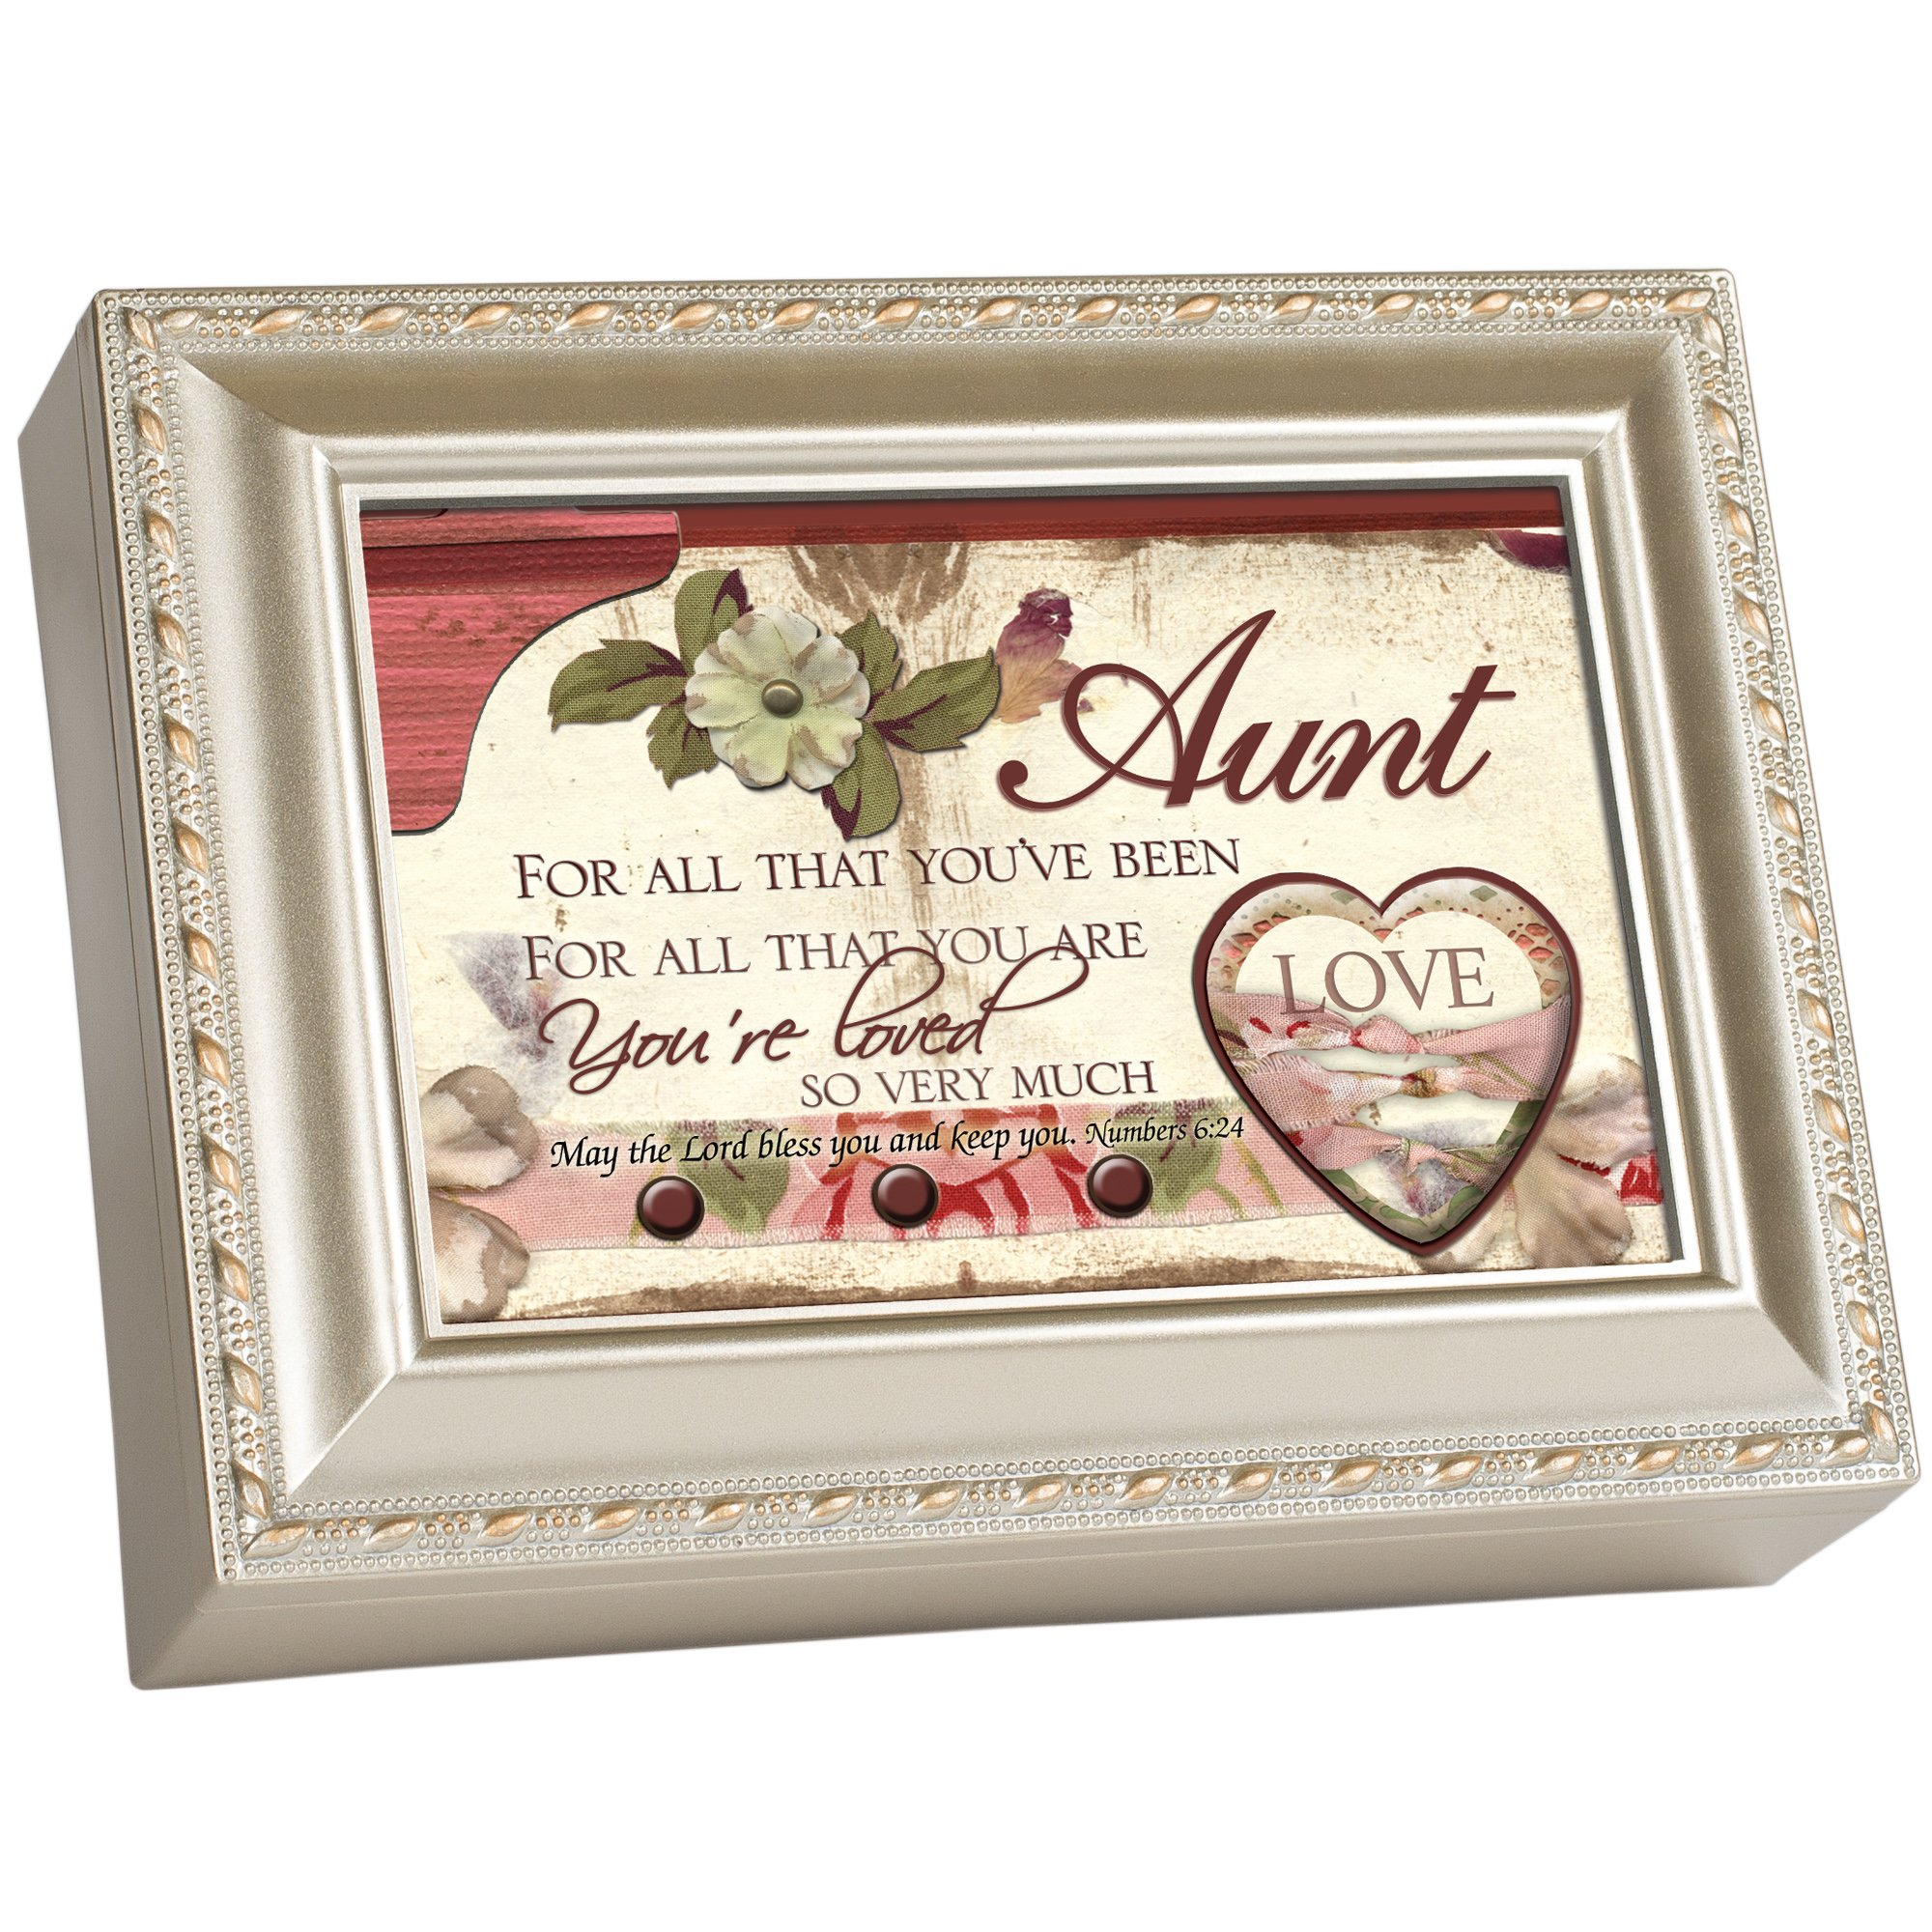 Cottage Garden Aunt All That You are Loved Very Silvertone Rope Trim Jewelry Music Box Plays Amazing Grace